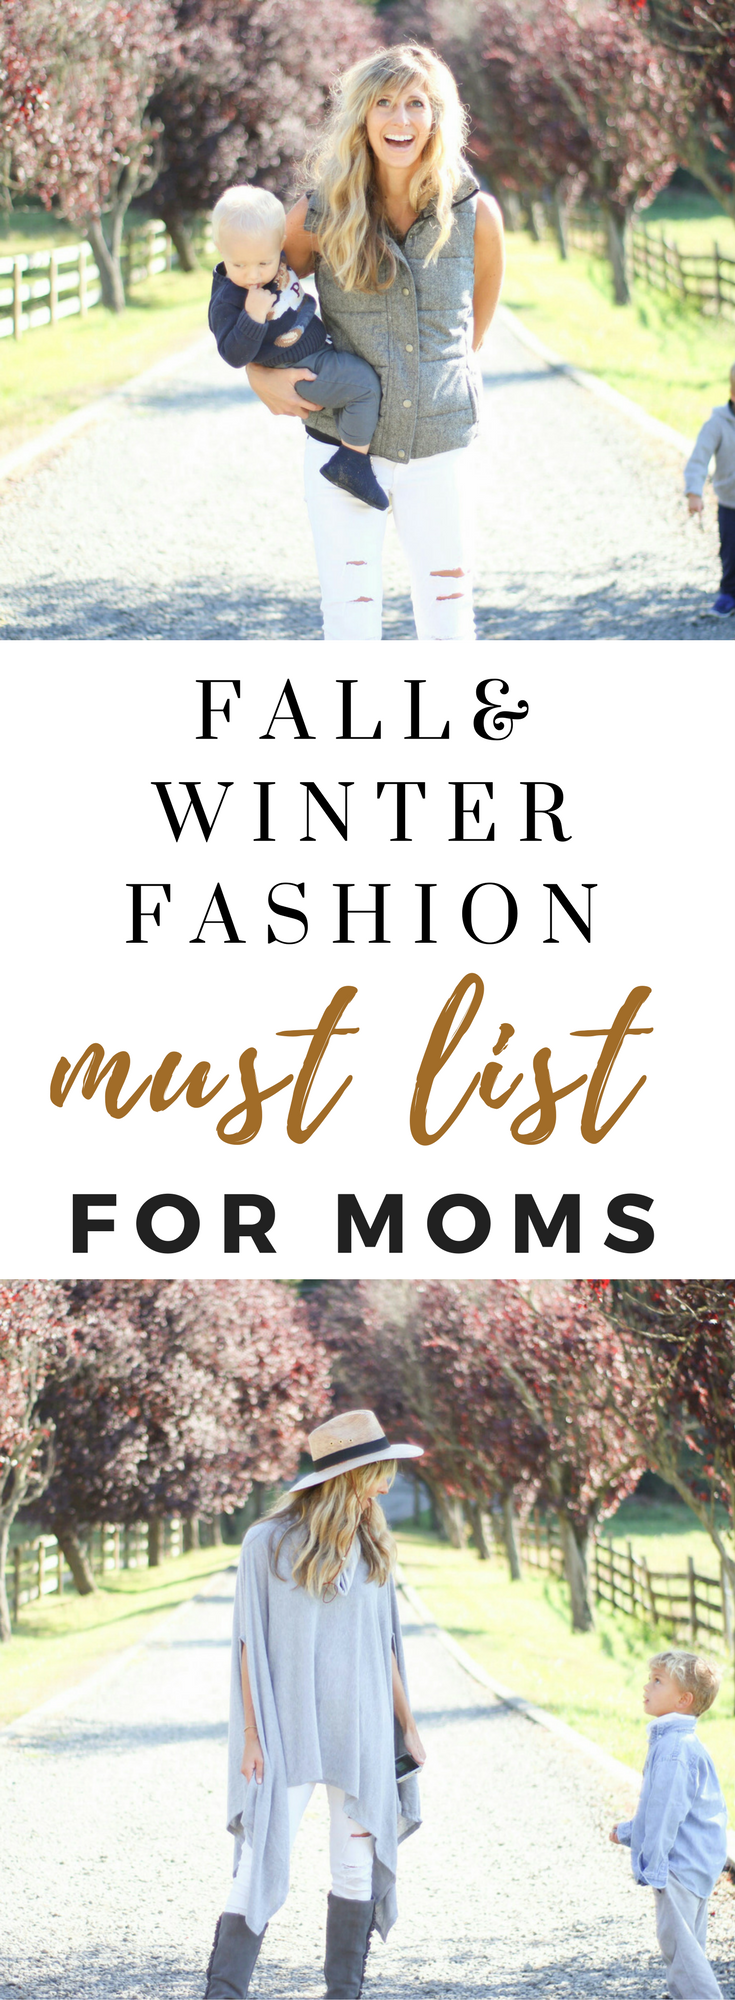 Fall and Winter Fashion List For Moms